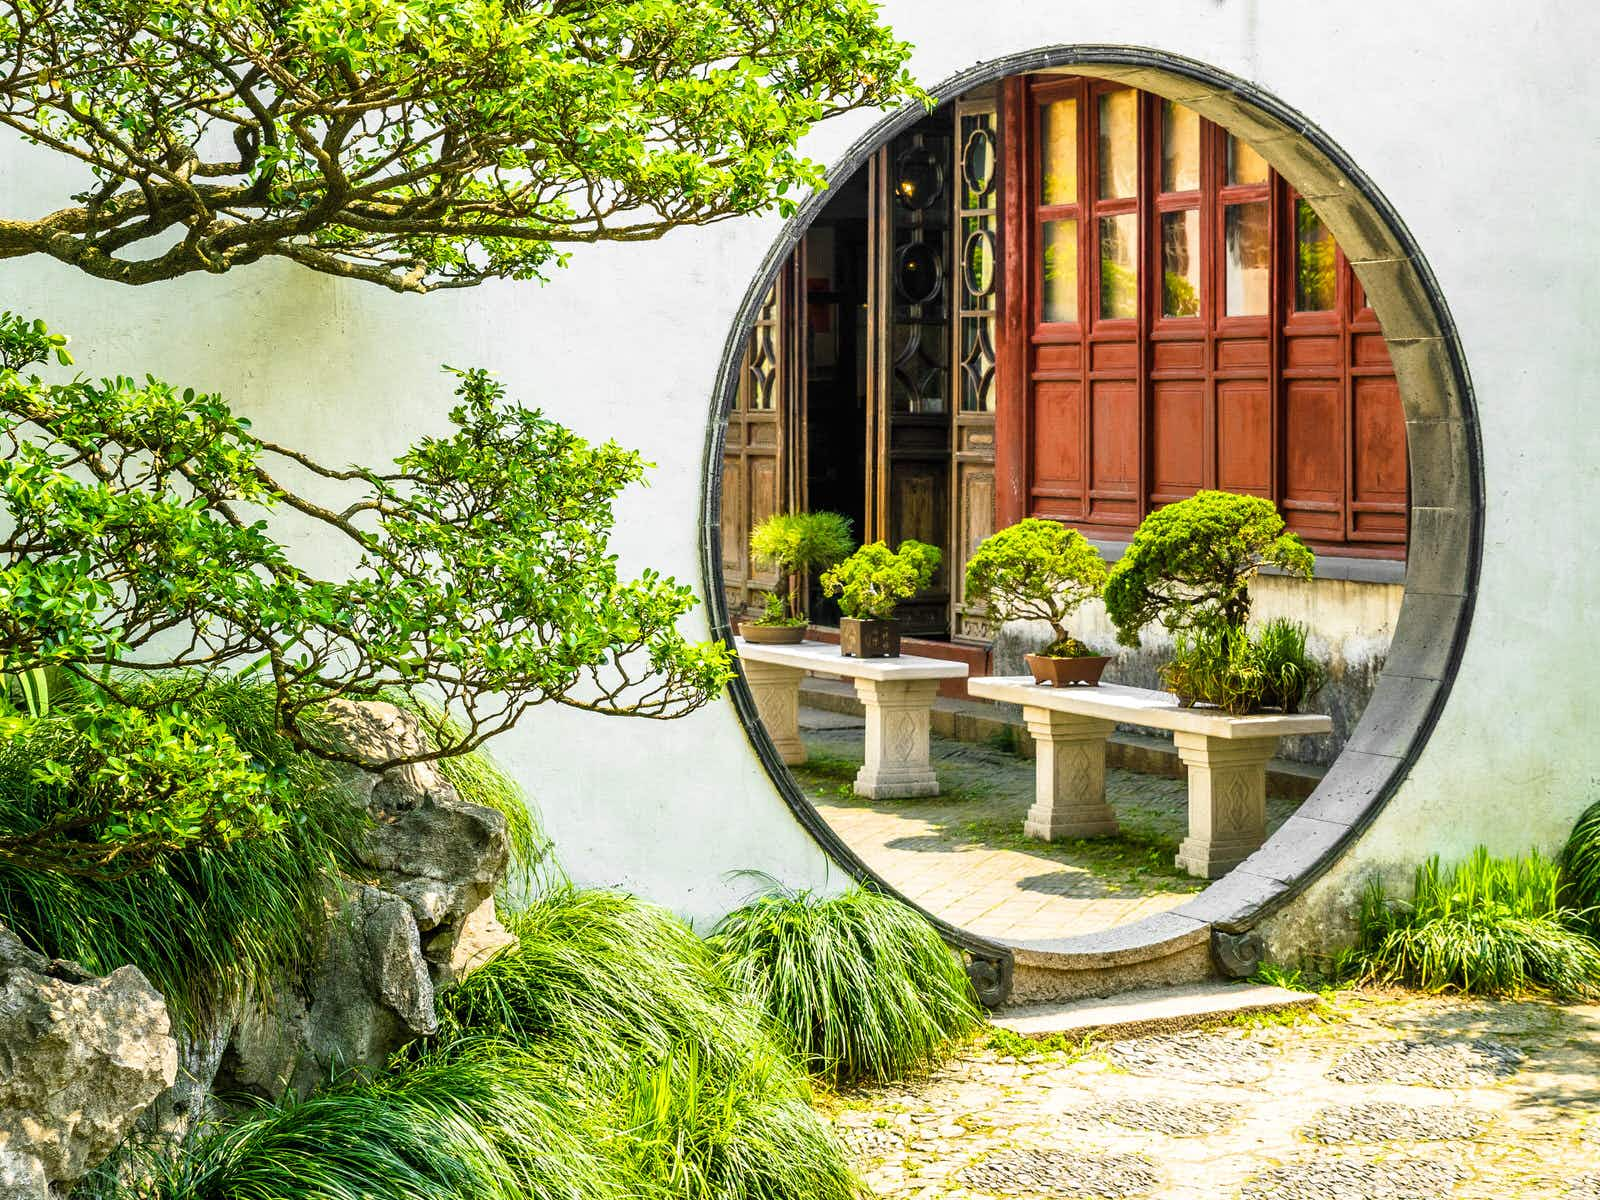 Garden to linger in: Suzhou's elegant classical Chinese gardens